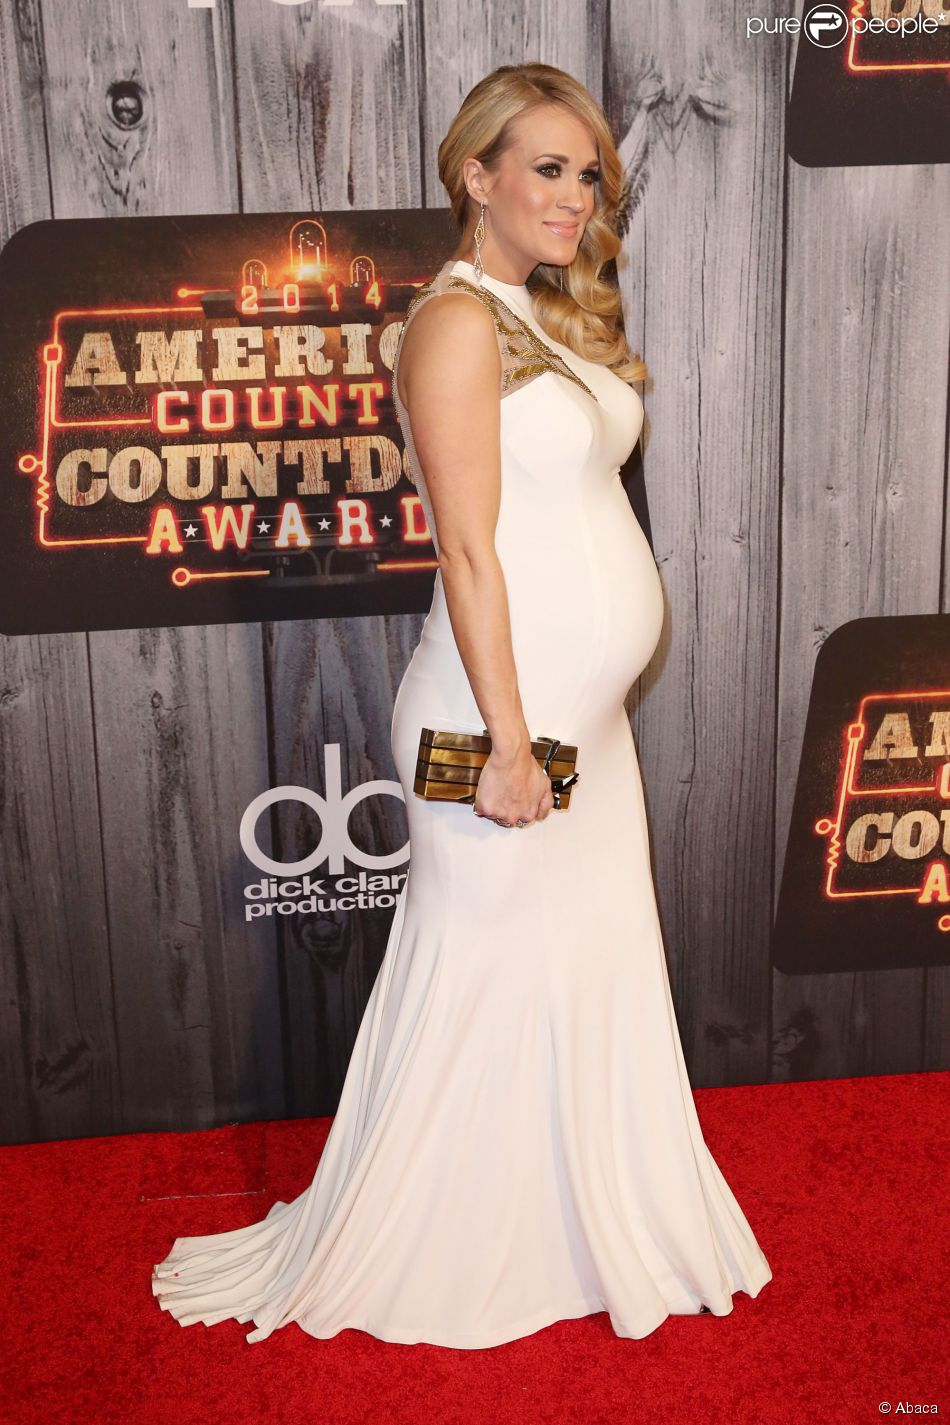 Carrie Underwood attending the 2014 American Country Countdown Awards on FOX at the Music City Center on December 15, 2014 in Nashville, Tennessee, USA. Photo by Curtis Hilbun/AFF/ABACAPRESS.COM16/12/2014 - Nashville